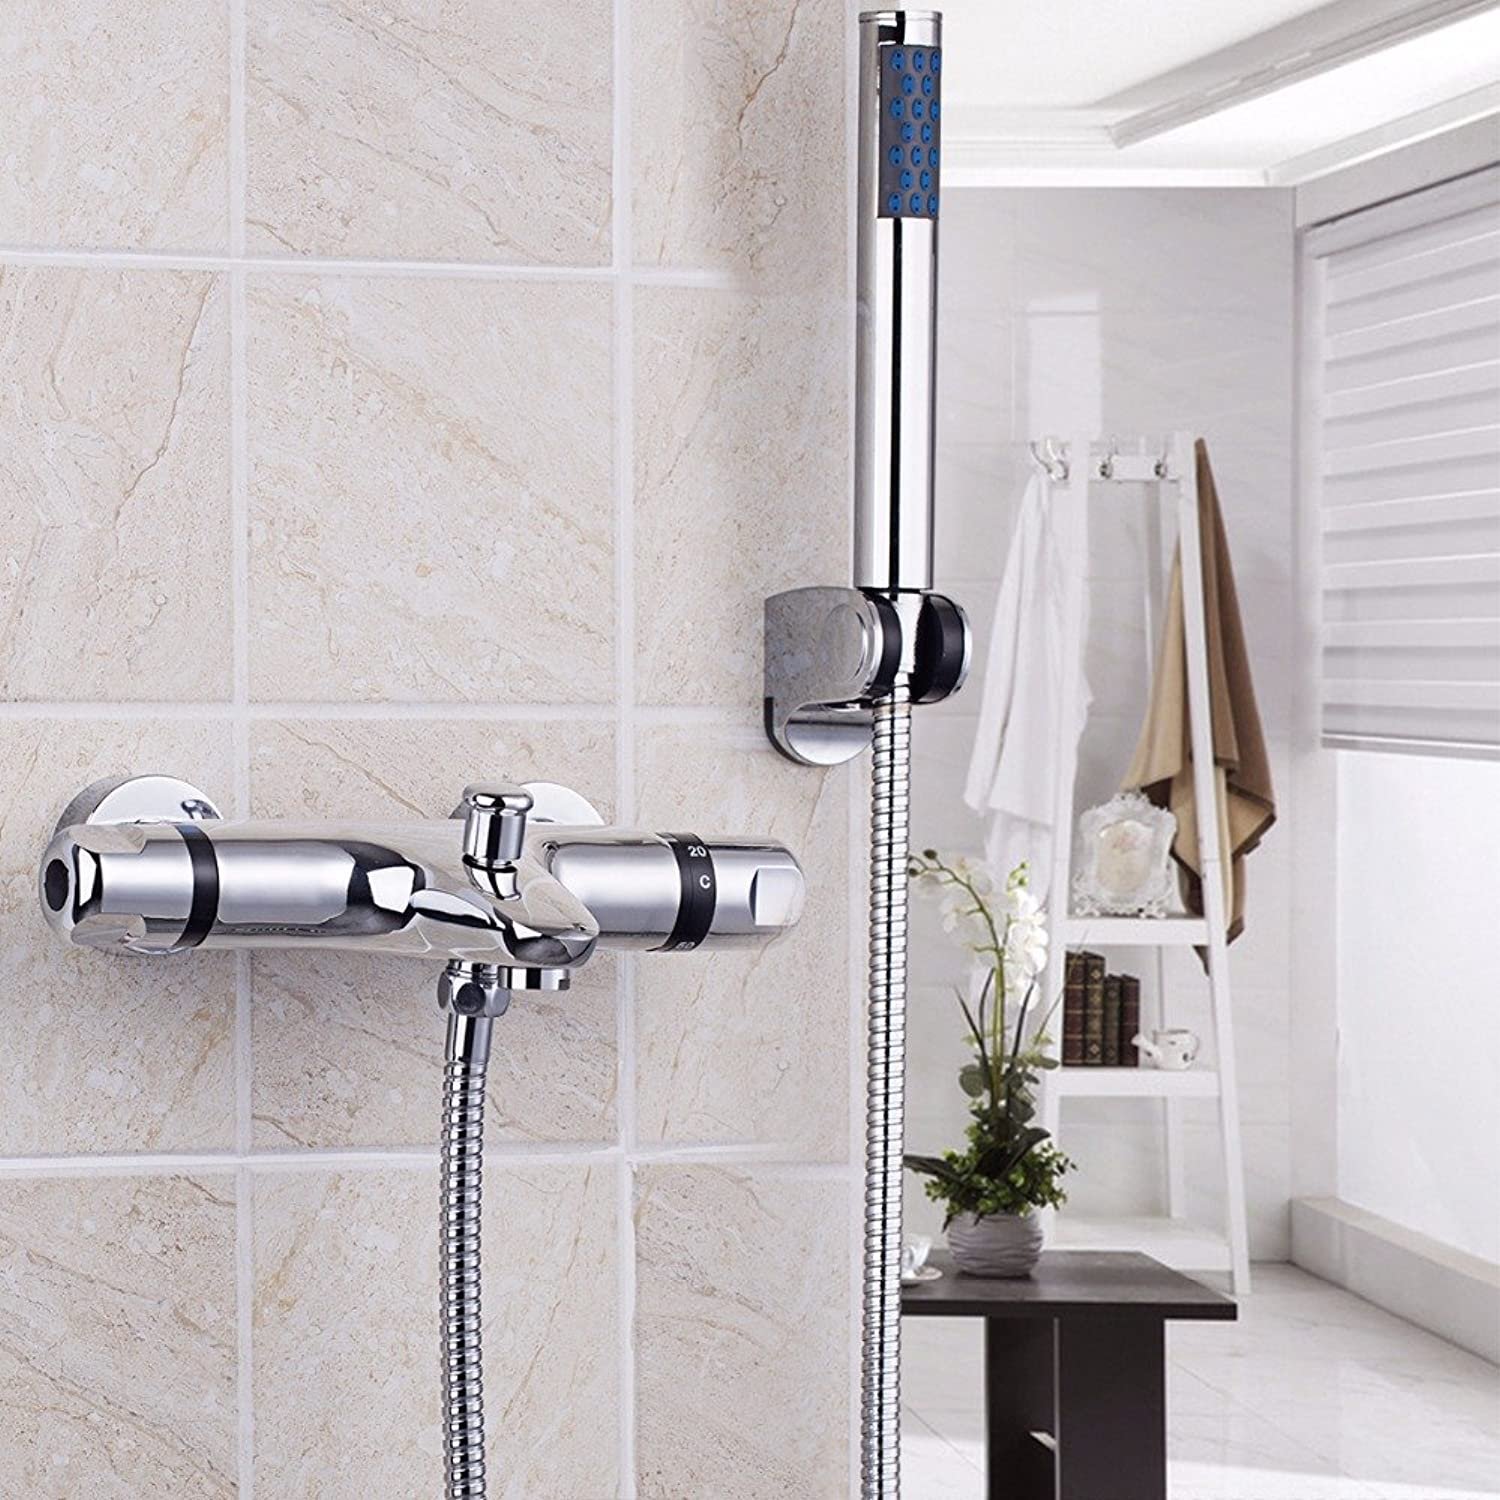 Bathroom Shower Faucet Set Bathroom Thermostatic Faucet Chrome Finish Mixer Tap Handheld Shower Wall Mounted Faucets&Tap